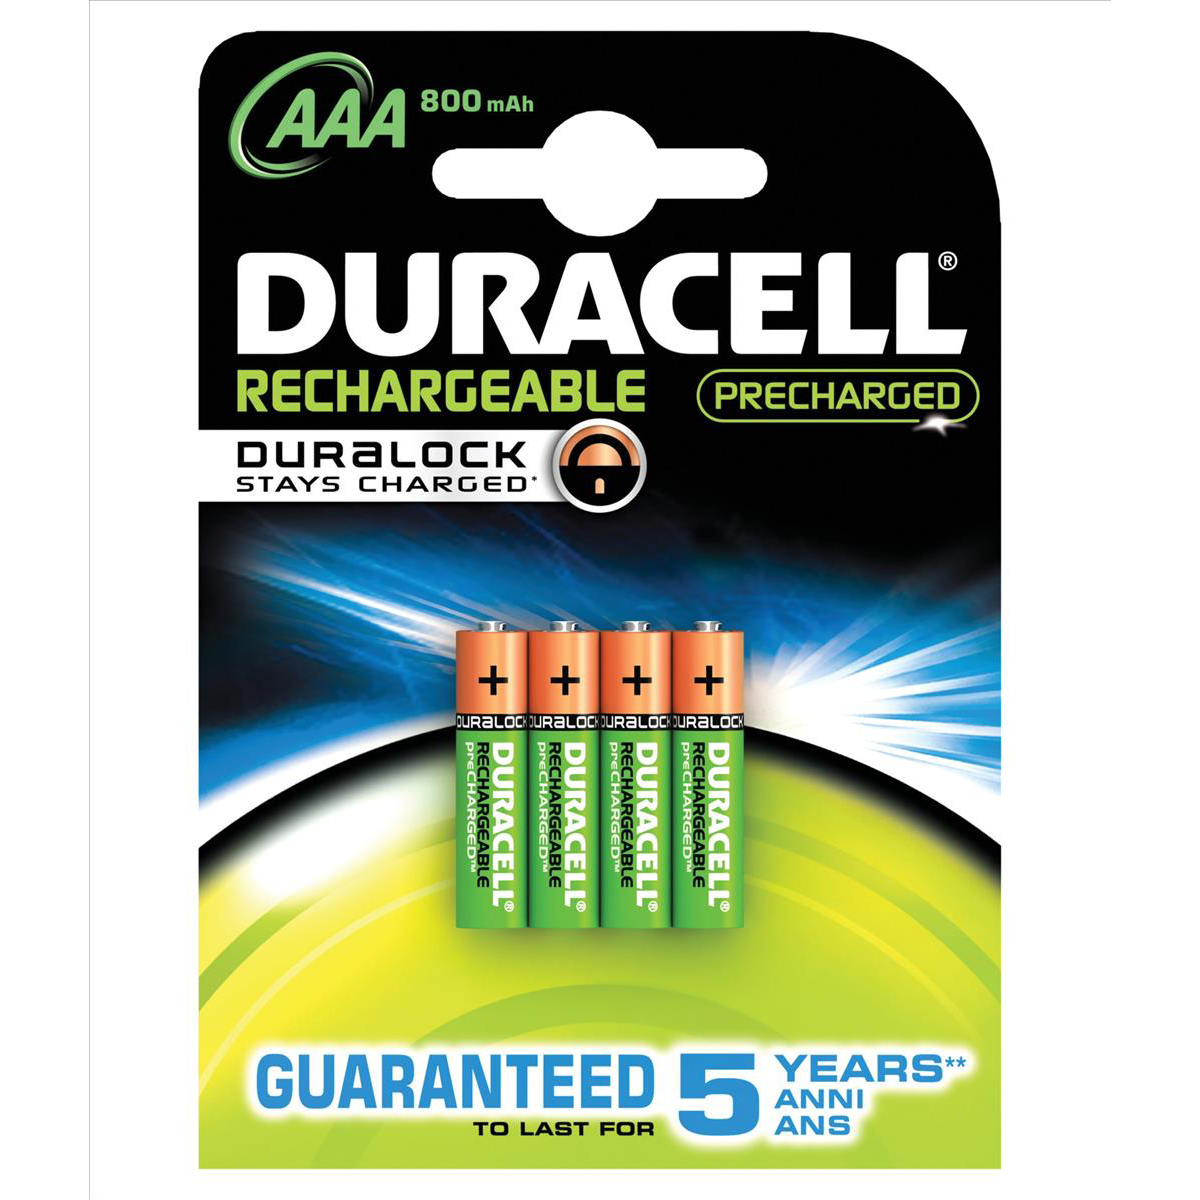 Duracell Stay Charged Battery Long-life Rechargeable 800mAh AAA Size 1.2V Ref 81364755 Pack 4